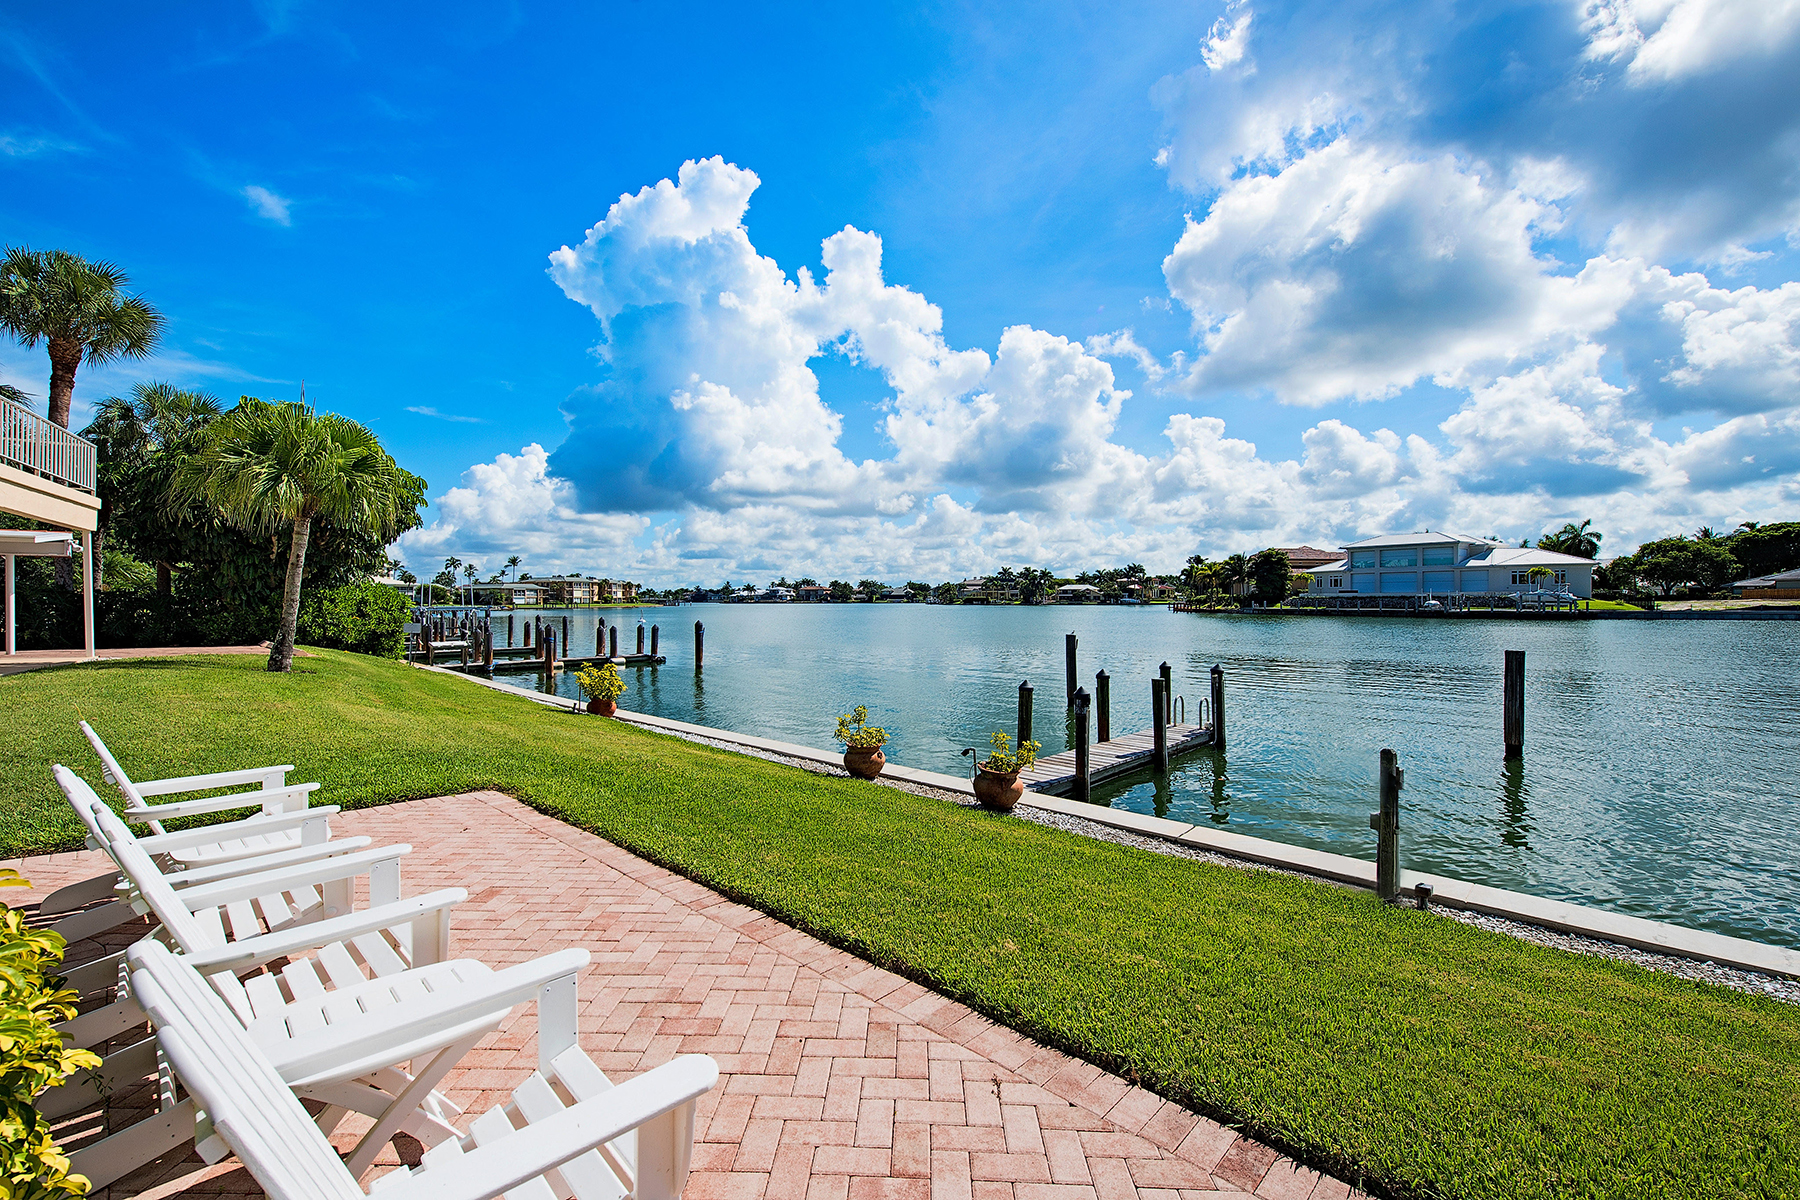 Condominium for Sale at MOORINGS - HOLLY GREEN VILLA 3070 Gulf Shore Blvd N 209 Naples, Florida, 34103 United States